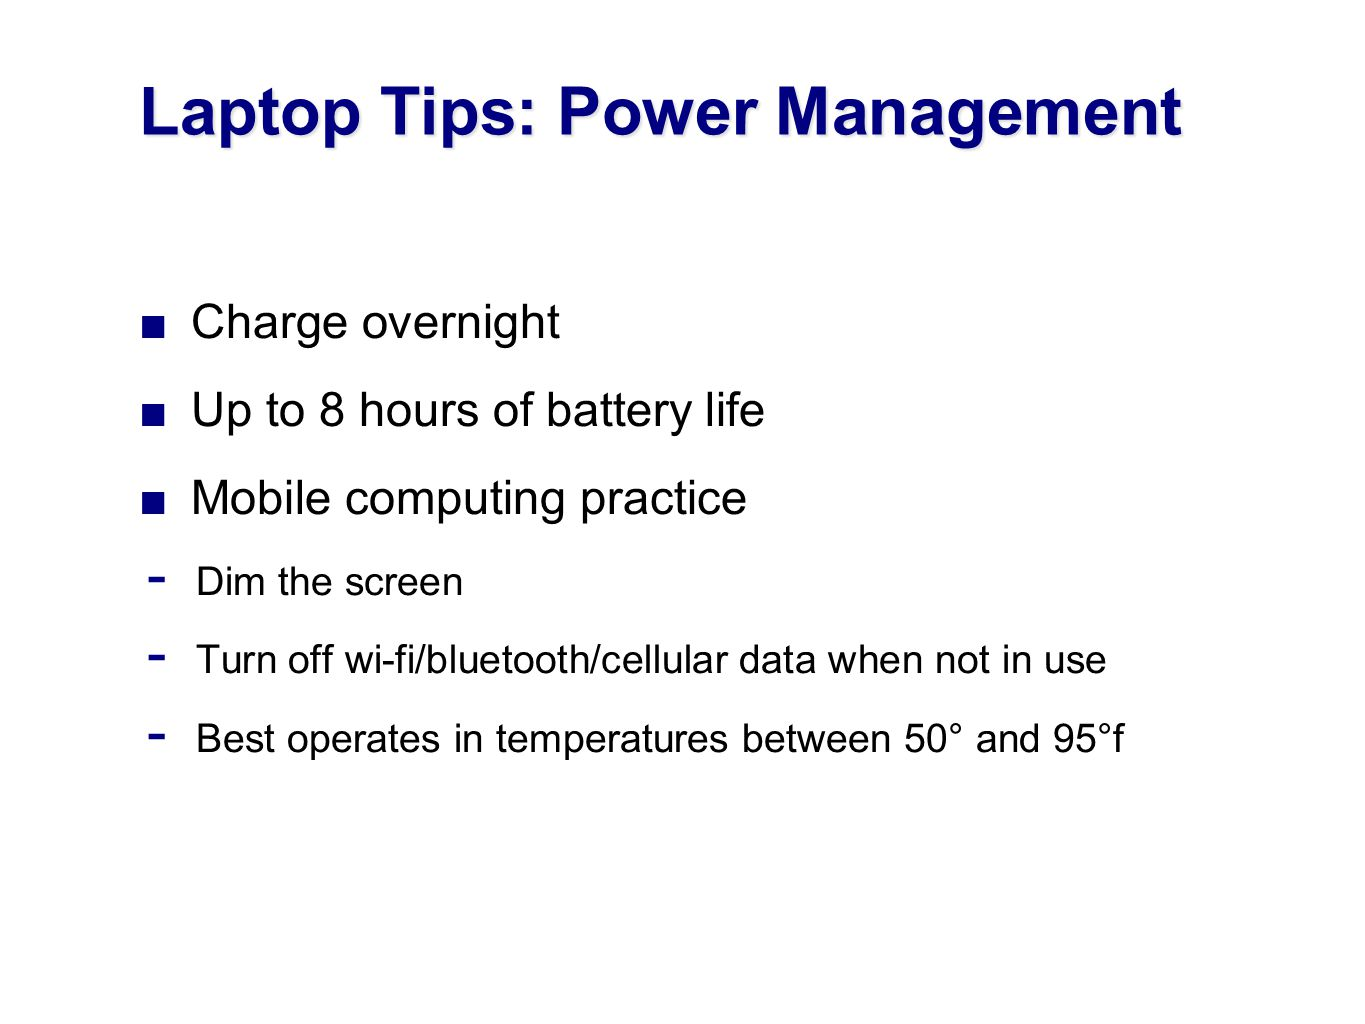 Charge overnight Up to 8 hours of battery life Mobile computing practice Dim the screen Turn off wi-fi/bluetooth/cellular data when not in use Best operates in temperatures between 50° and 95°f Laptop Tips: Power Management